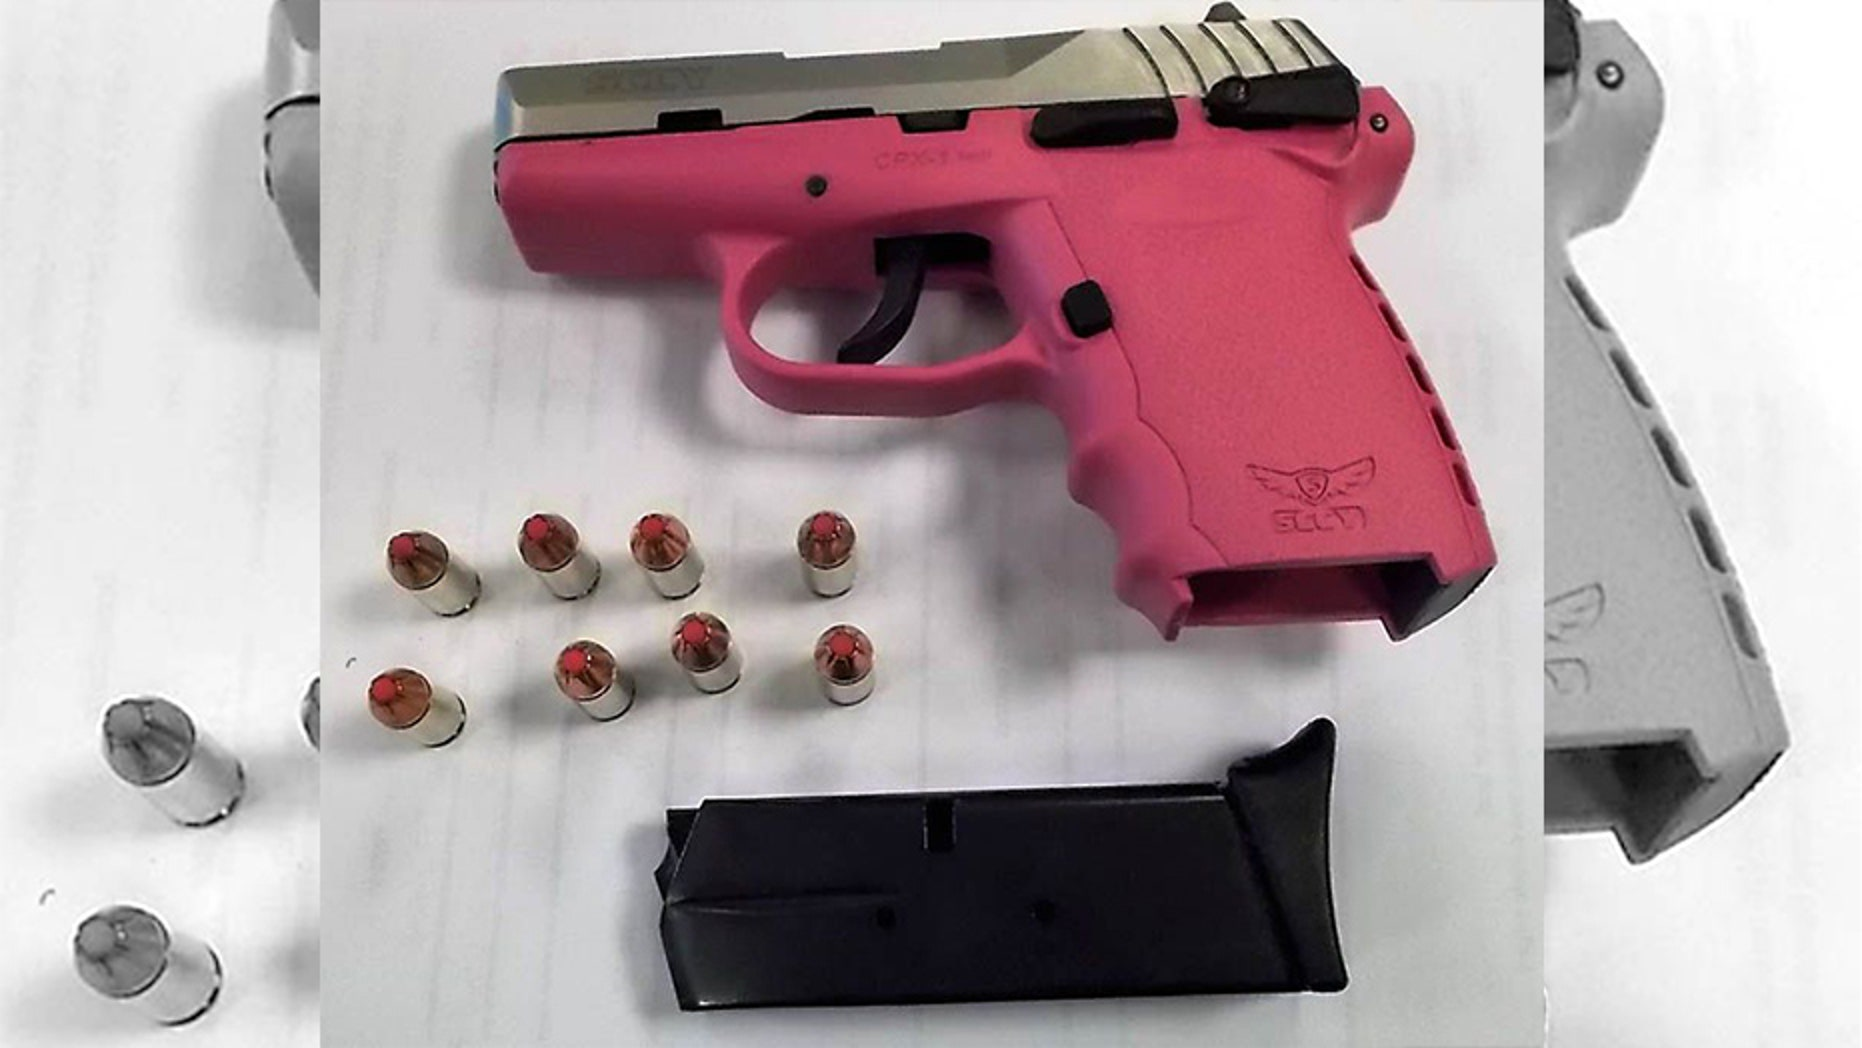 A woman was arrested after her hot pink gun was found at an airport security checkpoint, loaded with 8 pink-tipped bullets.